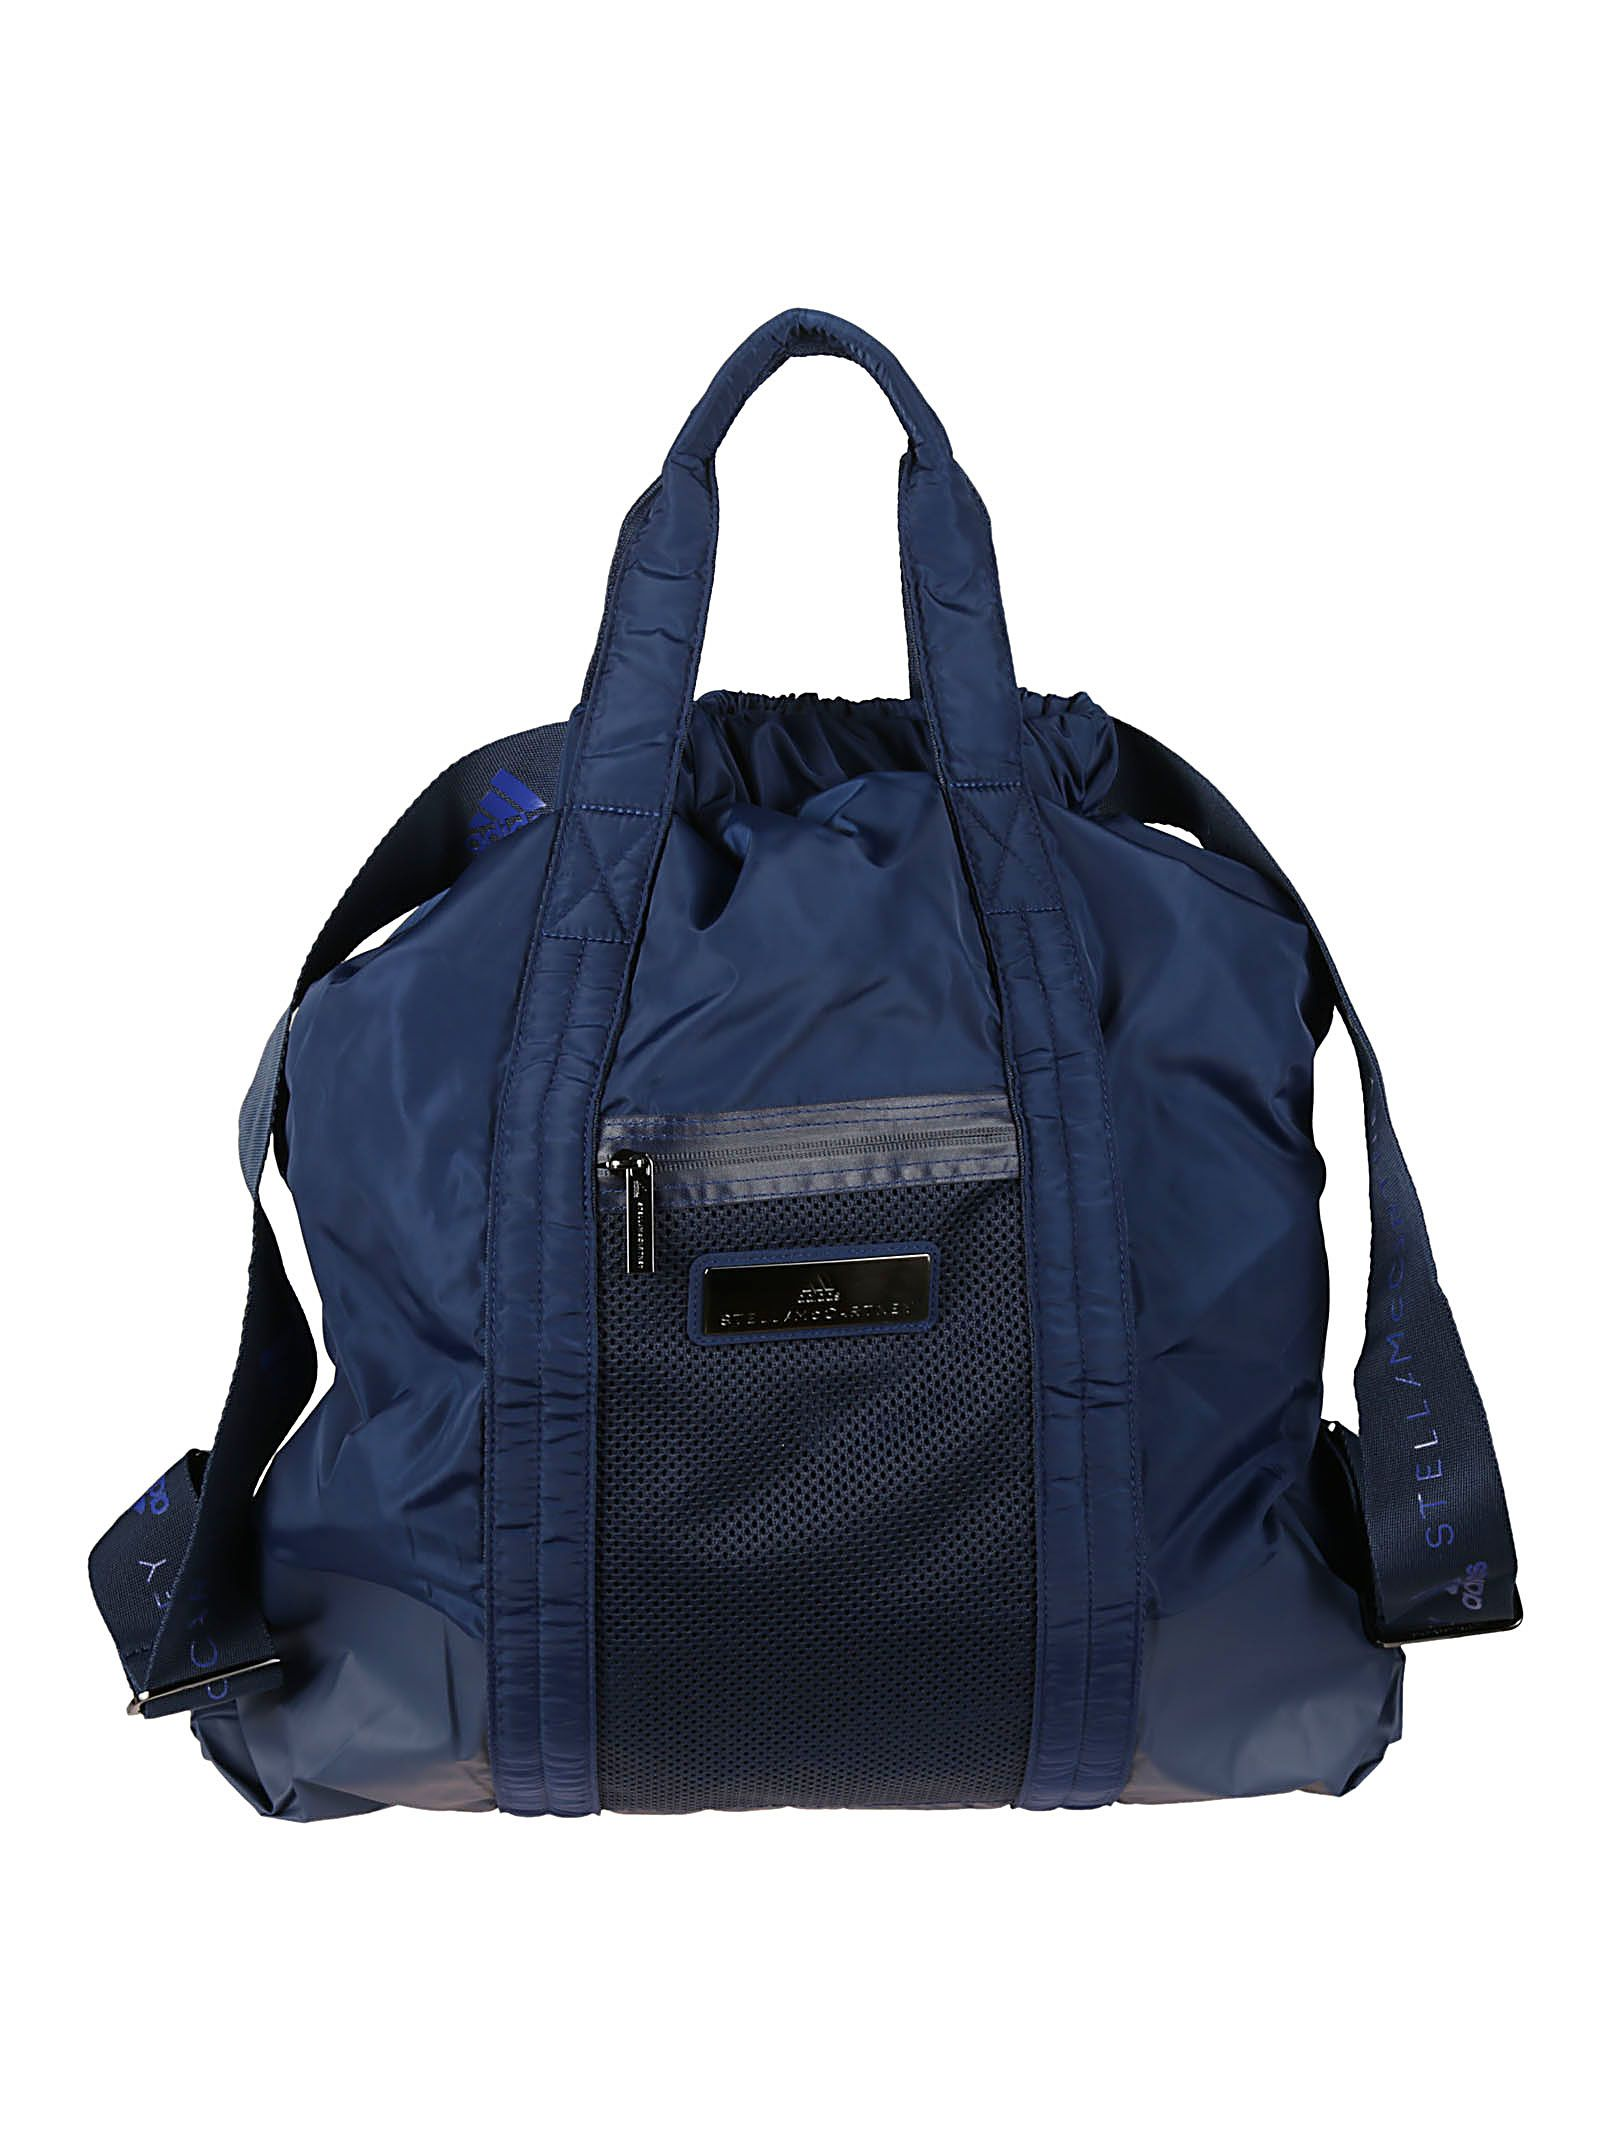 3375dd7a2e Adidas Originals Y-3 Gym Backpack In Blue